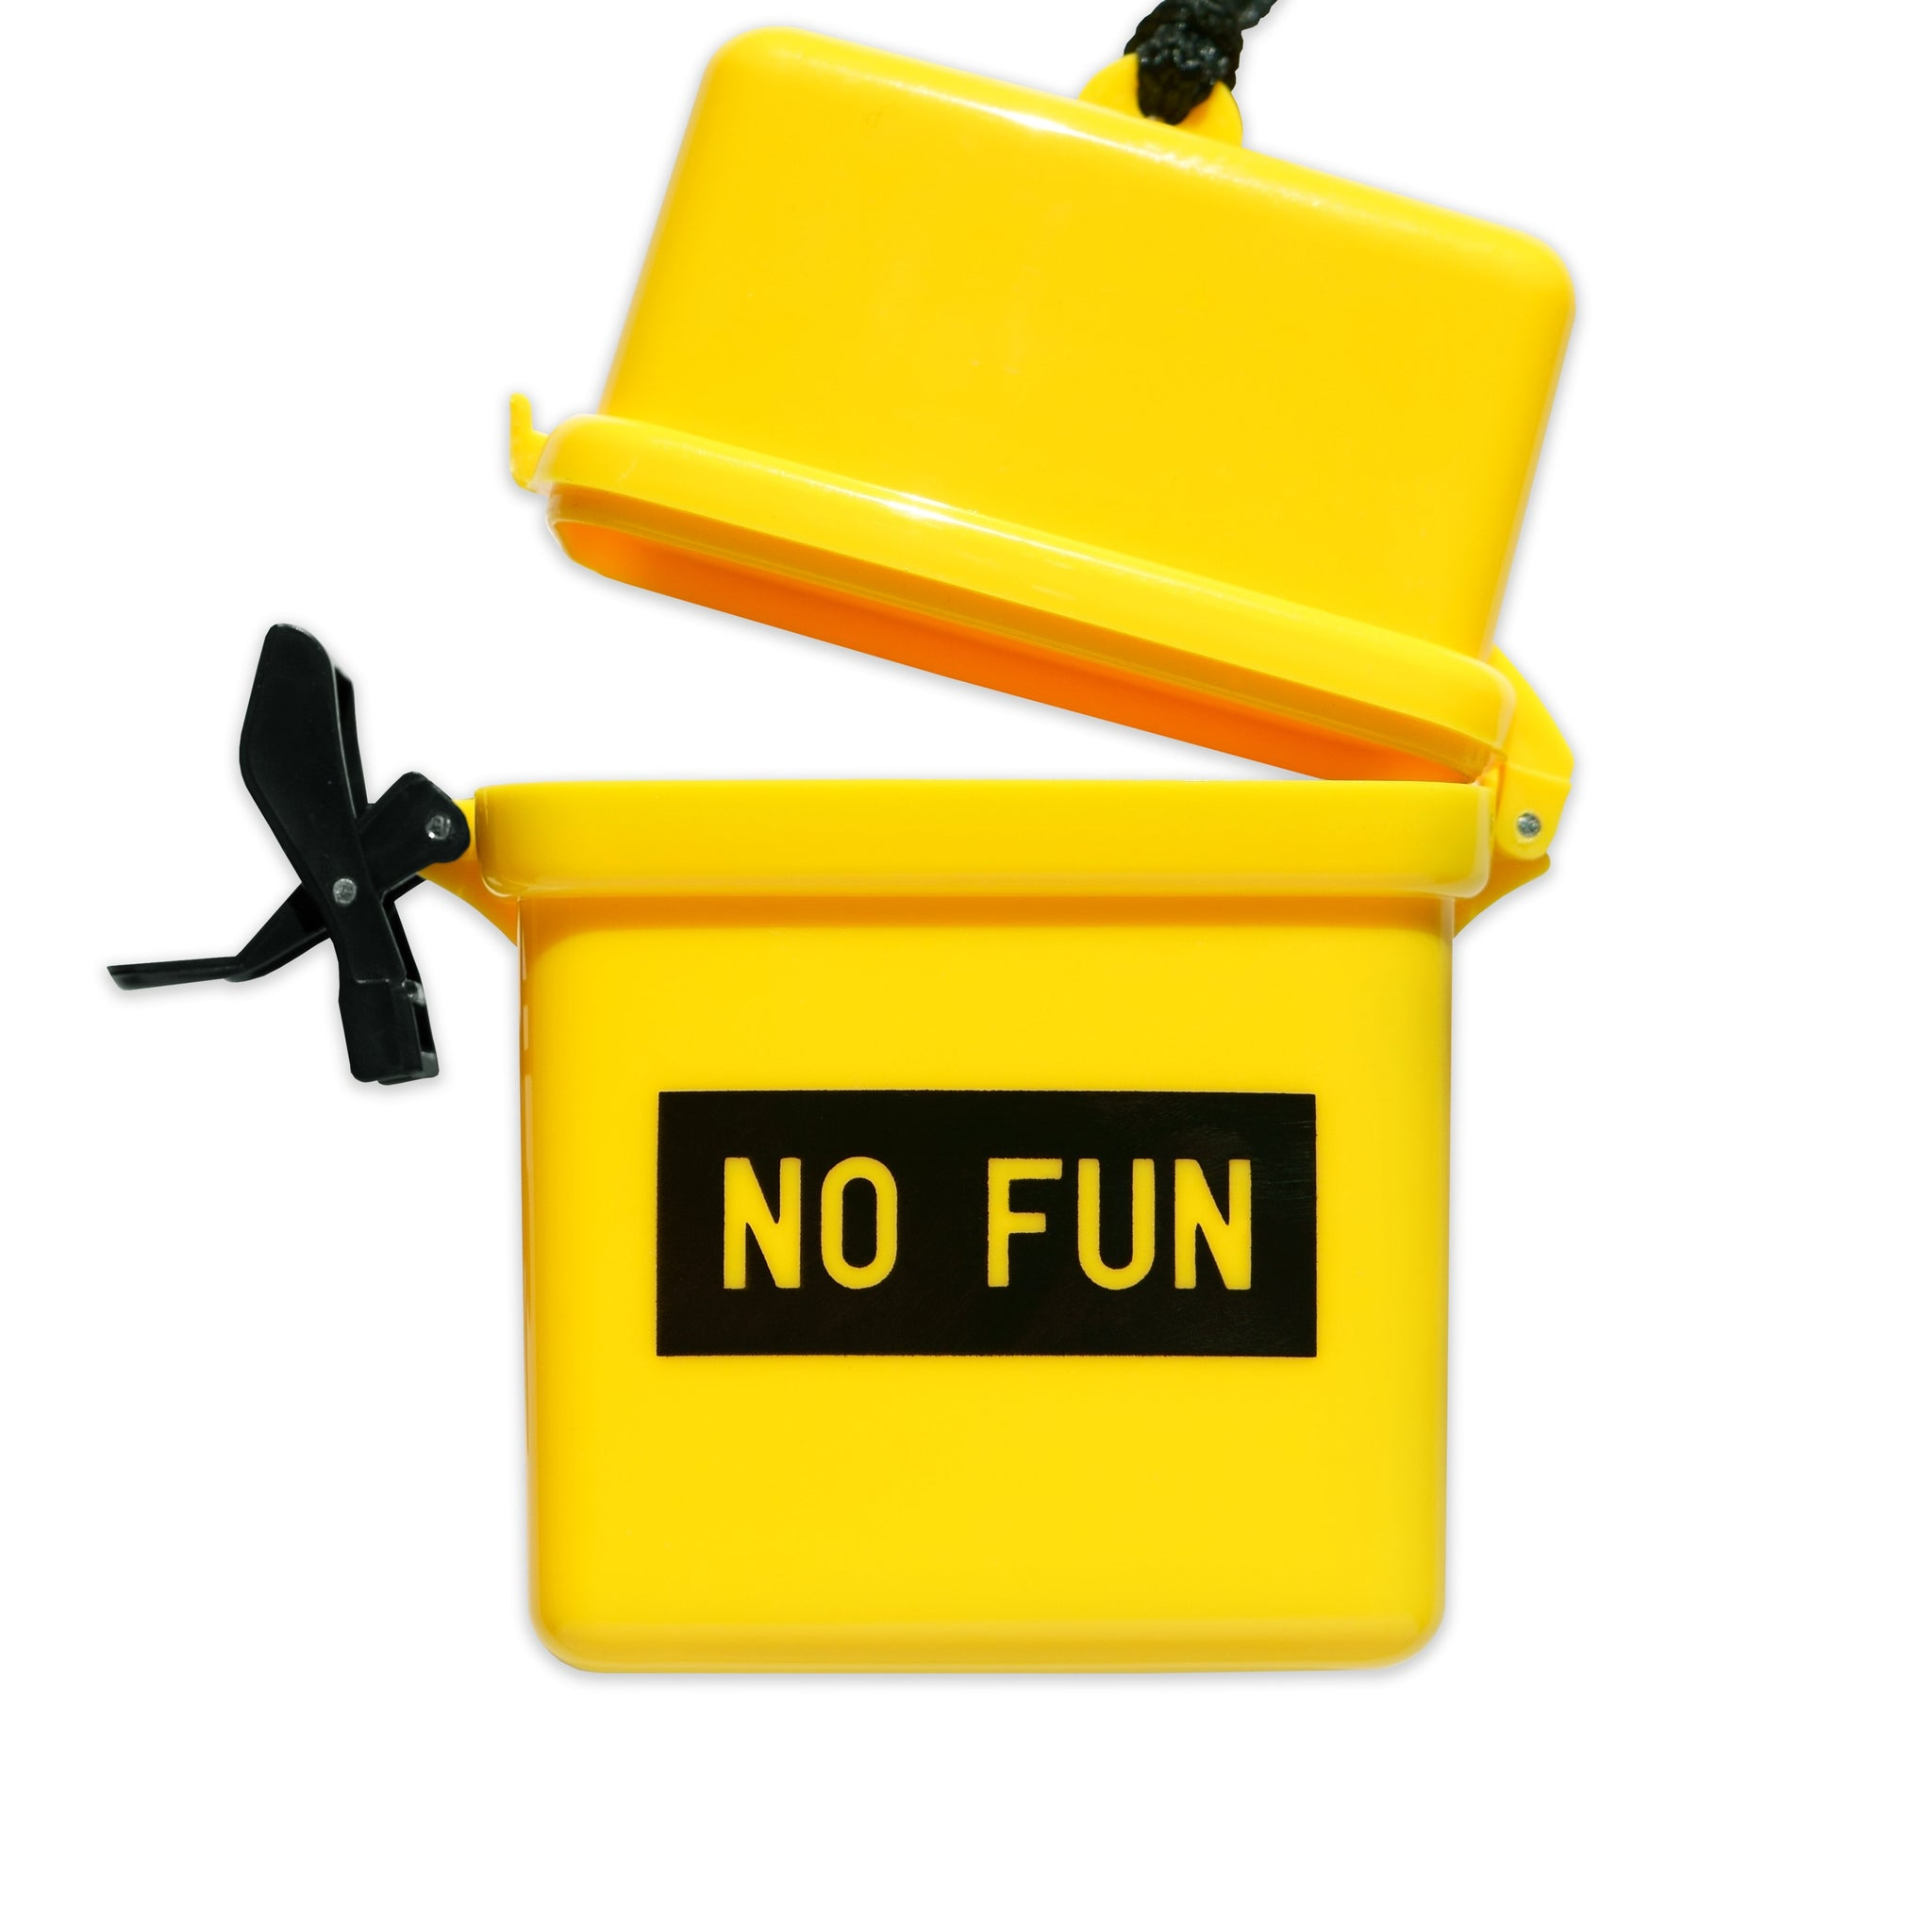 No Fun Press - Signature Waterproof Container - Yellow/ Open